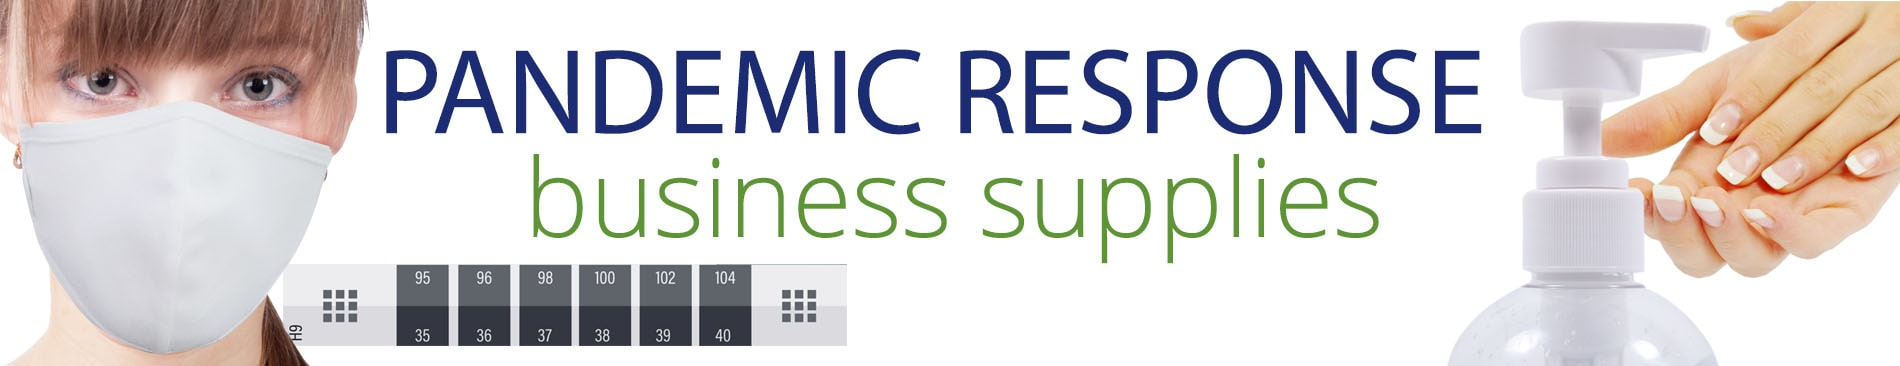 pandemic response business supplies